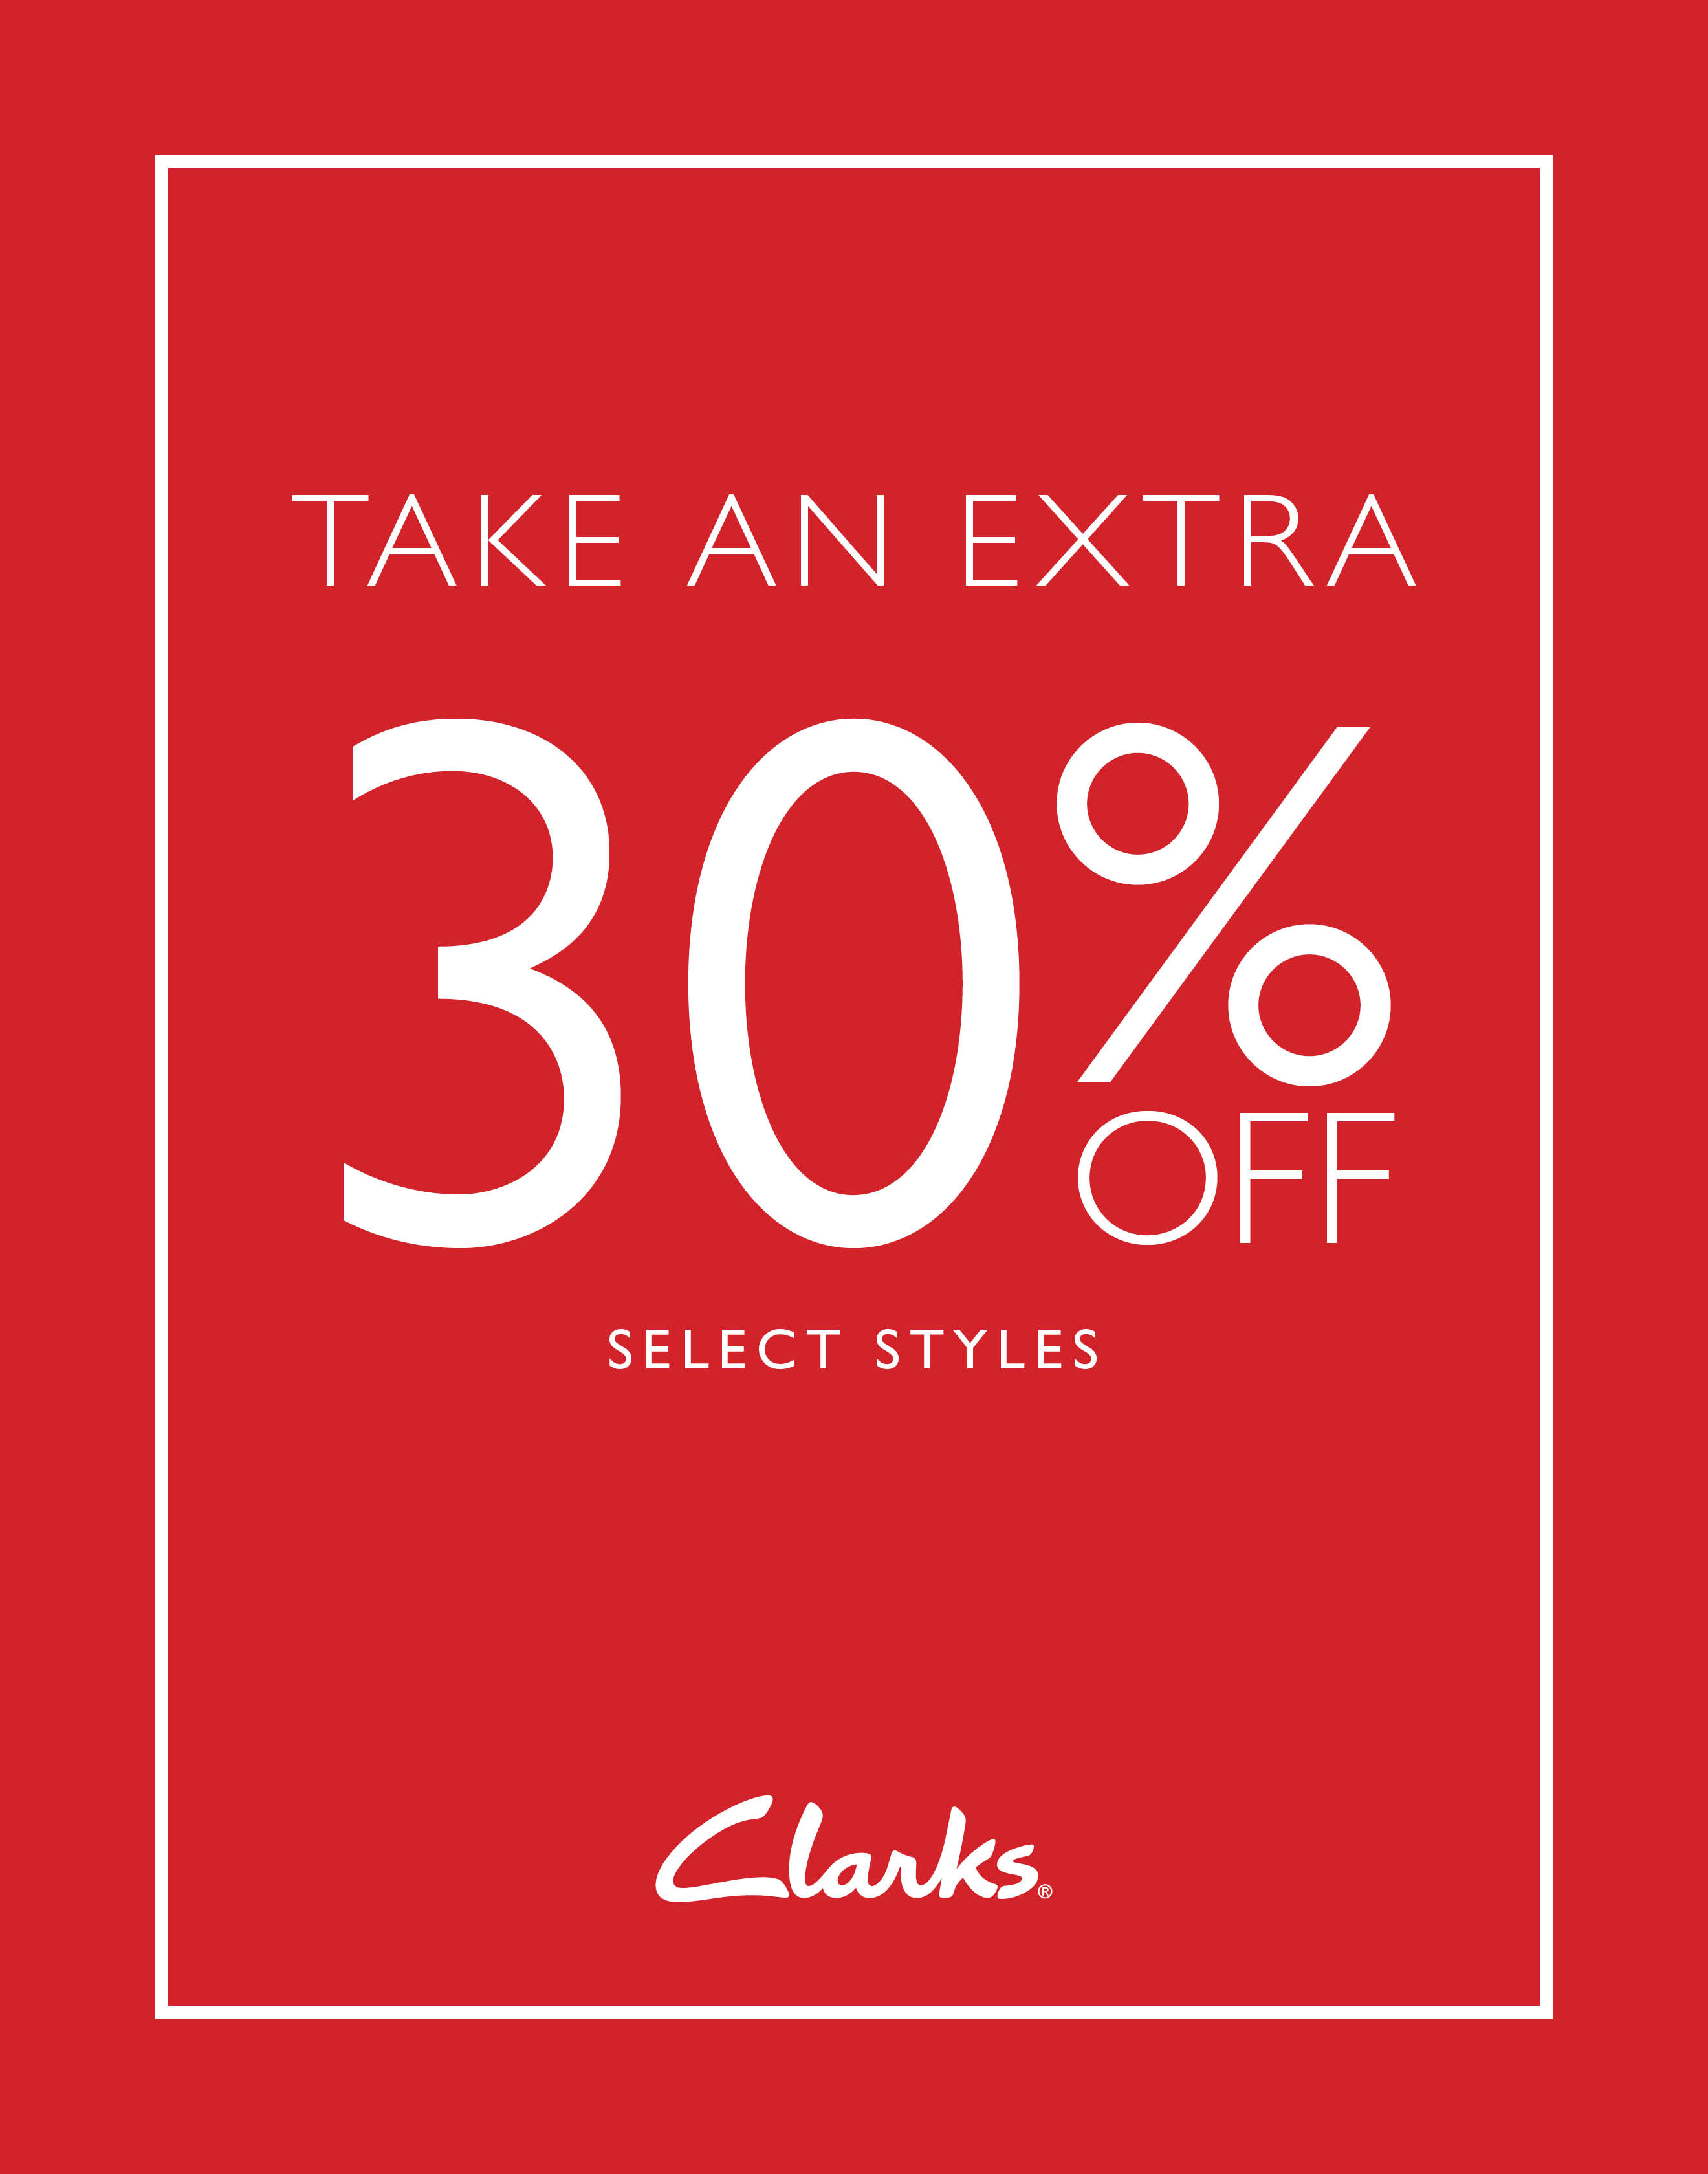 clarks Core SALE Leaseline 22x28 FINAL3